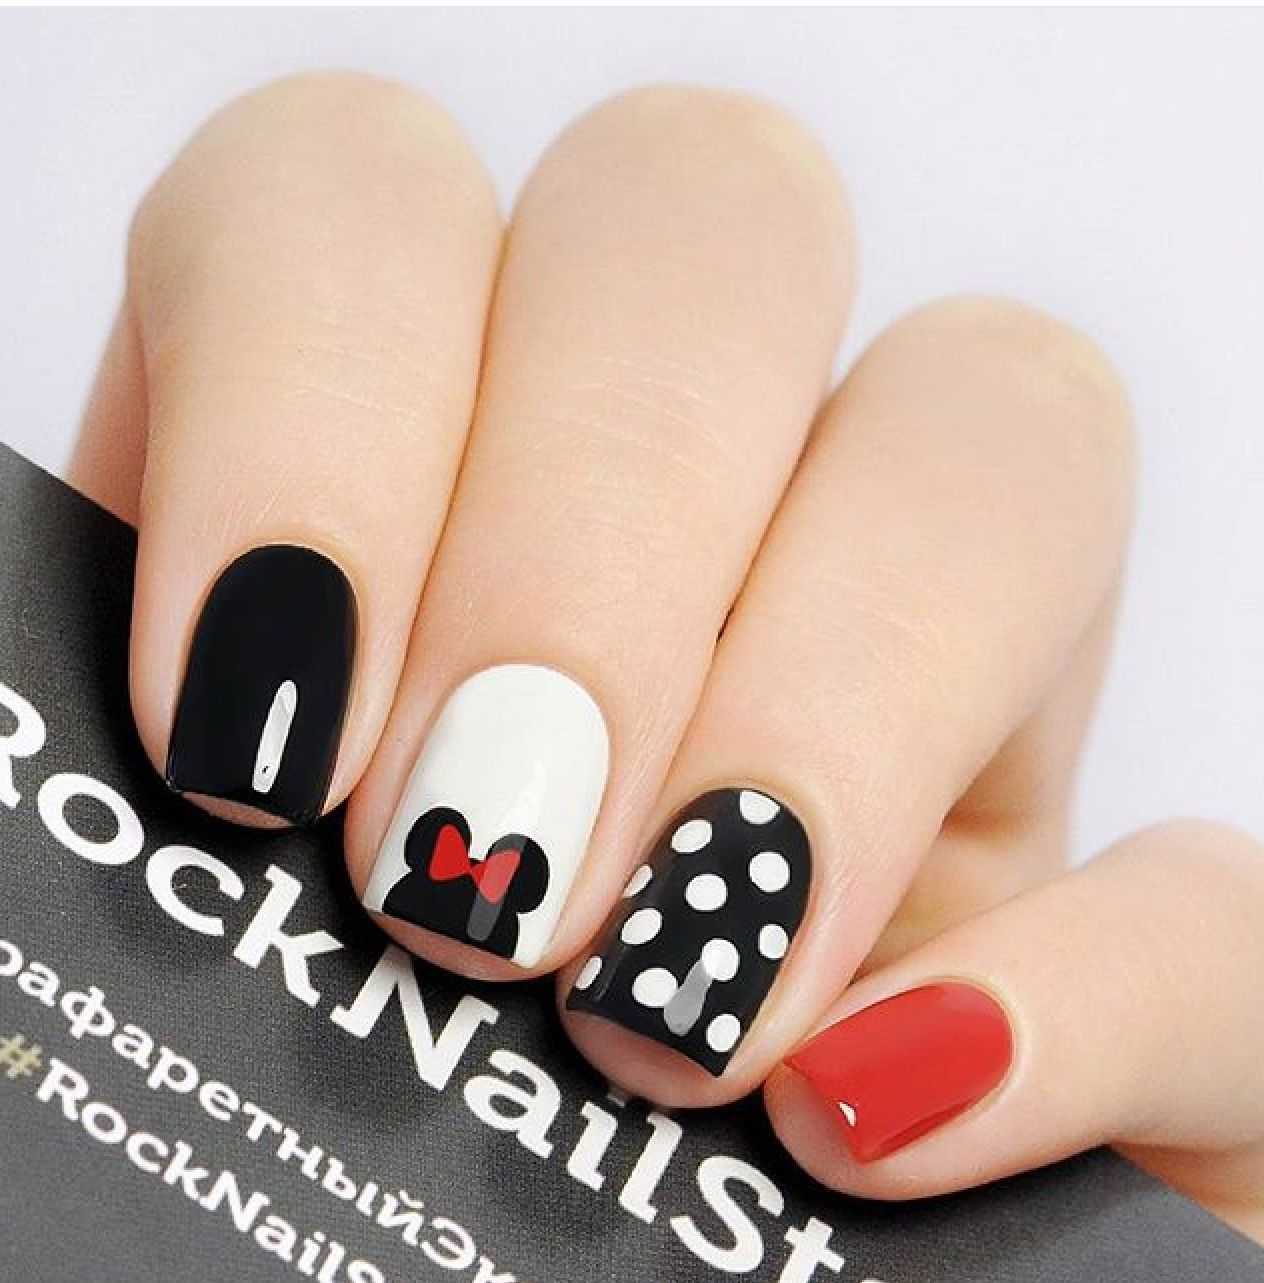 Disney nails | Hair .. Nails .. Makeup | Pinterest | Disney nails ...